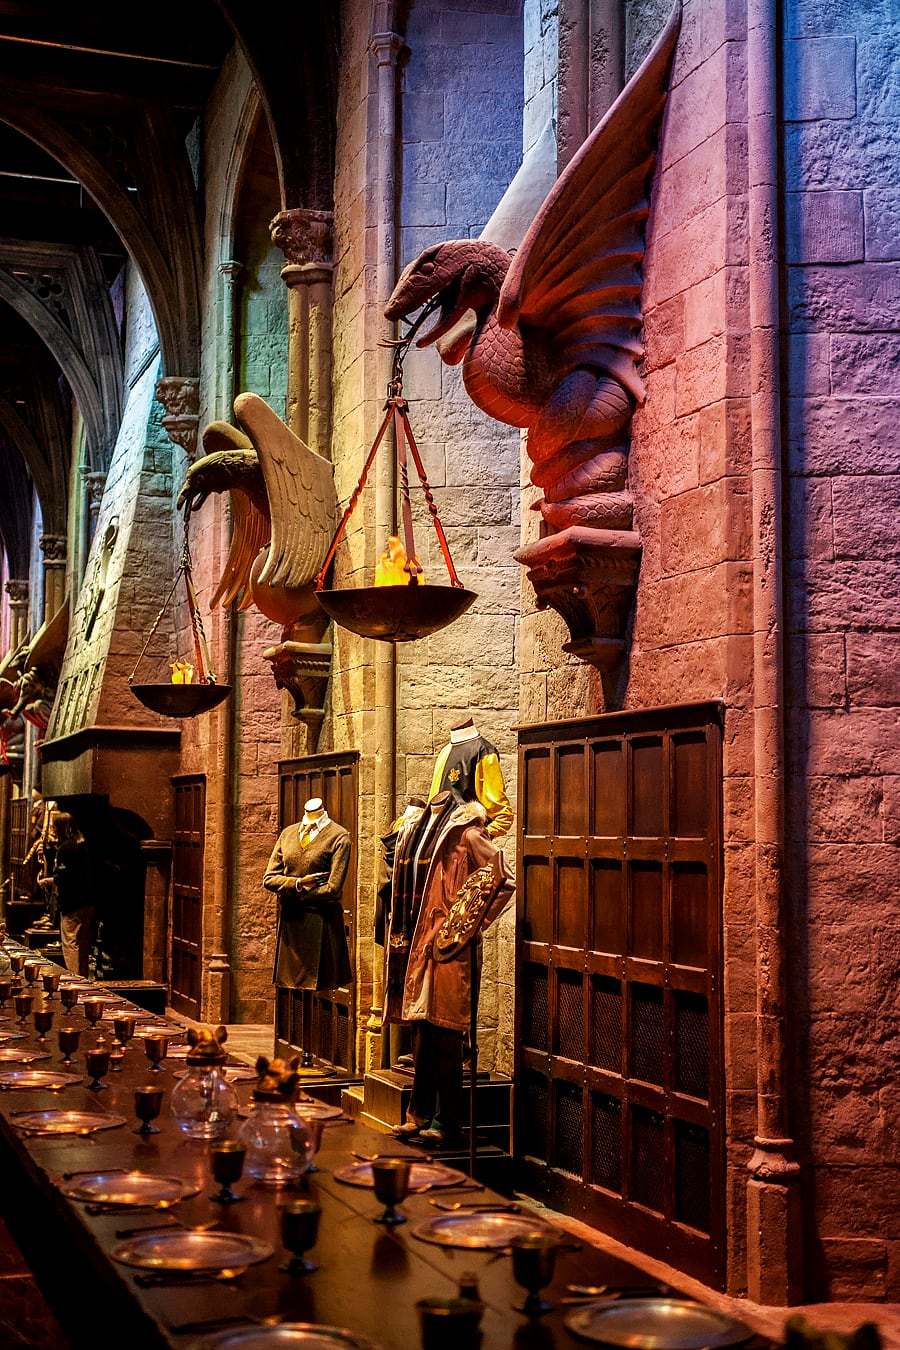 Visite au Harry Potter Warner Bros Studio de Londres - La grande salle